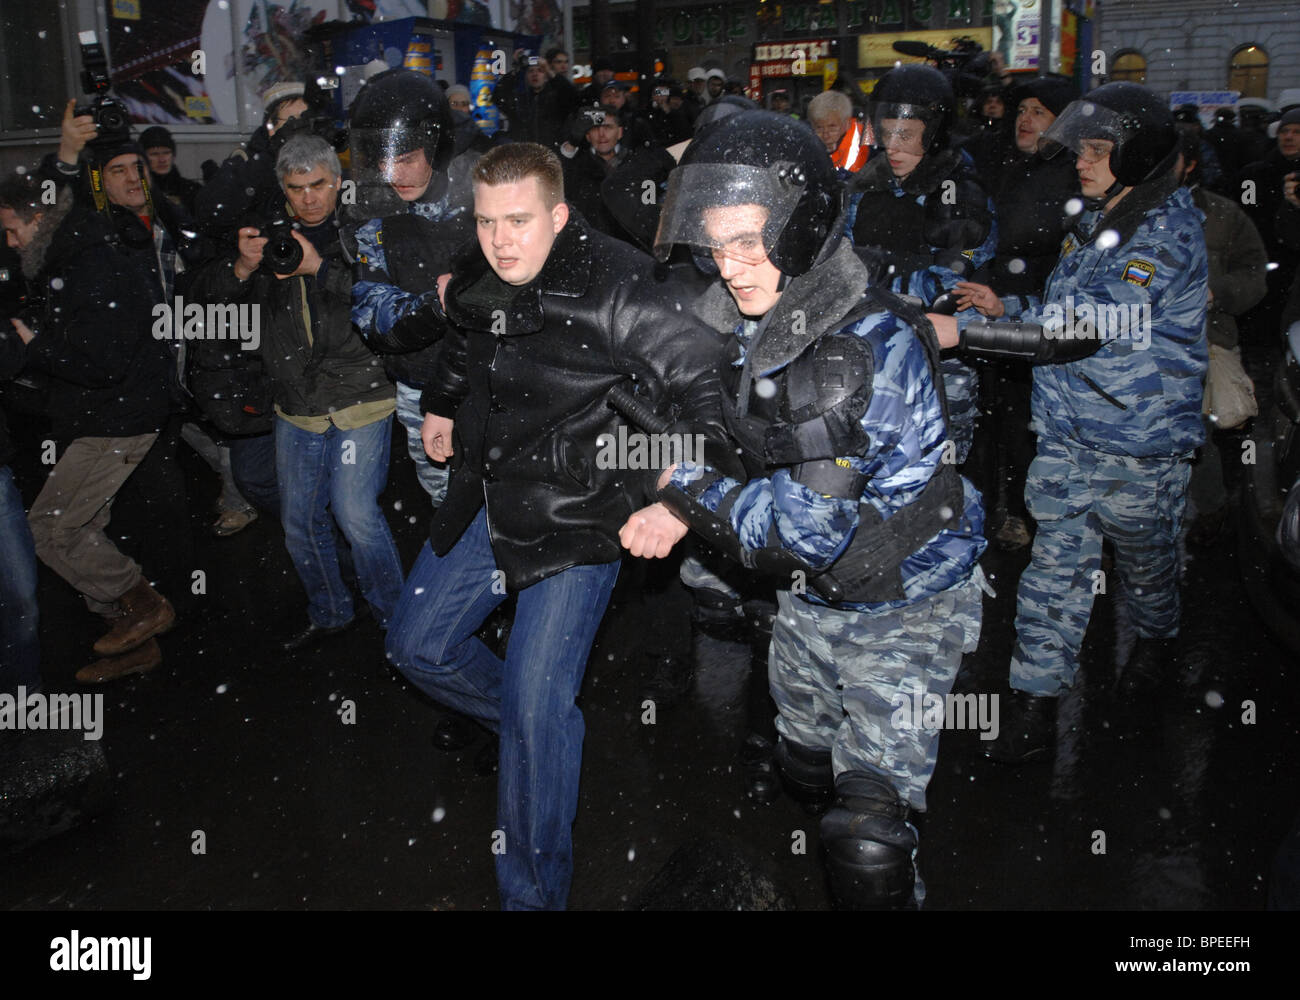 Unauthorised Dissenters March dispersed in Moscow Stock Photo